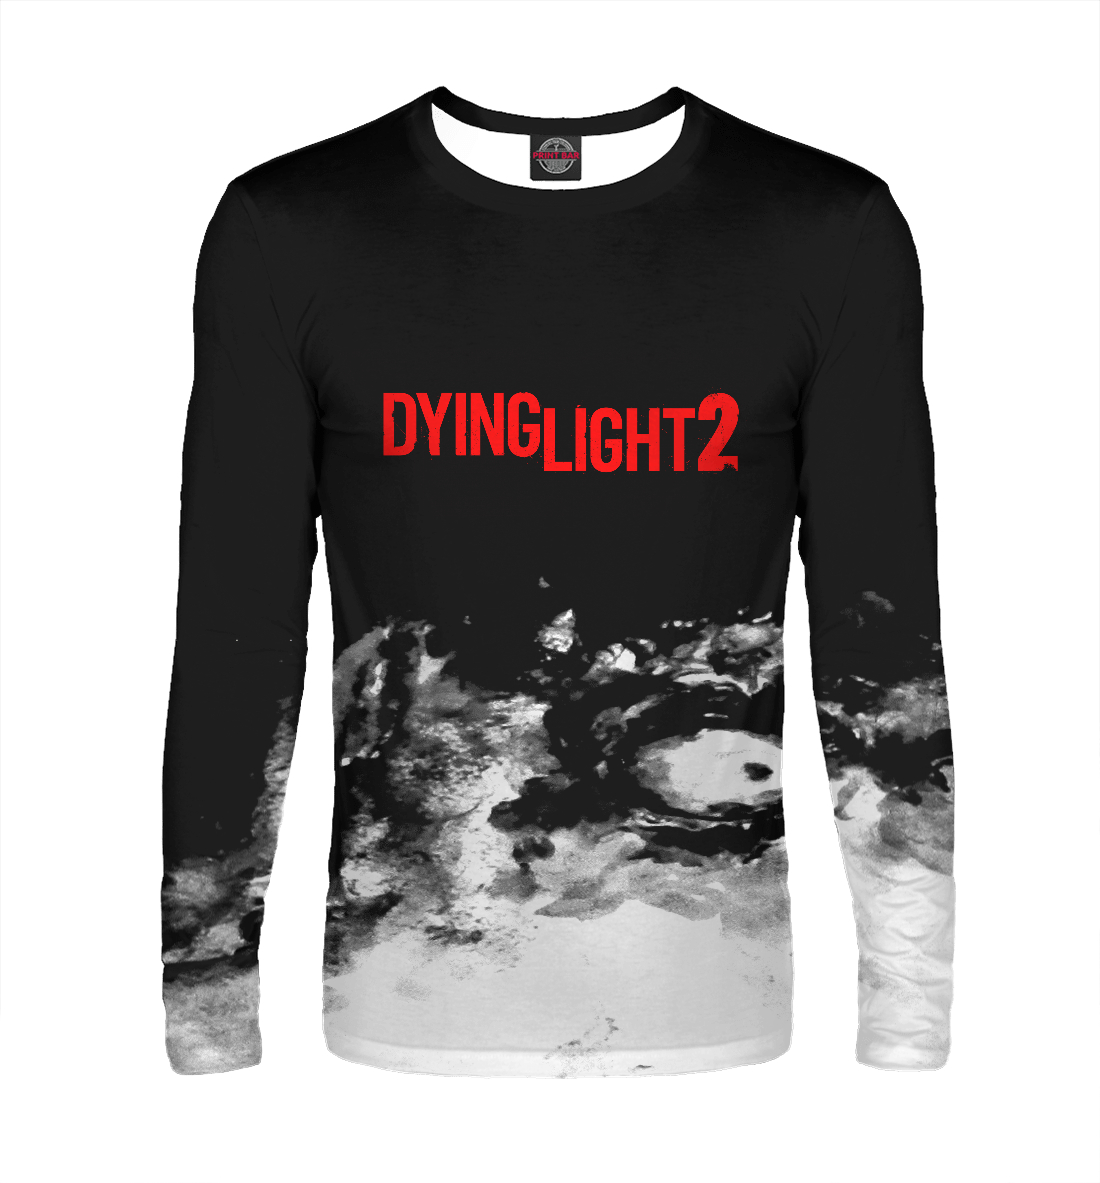 DYING LIGHT 2 dying happy